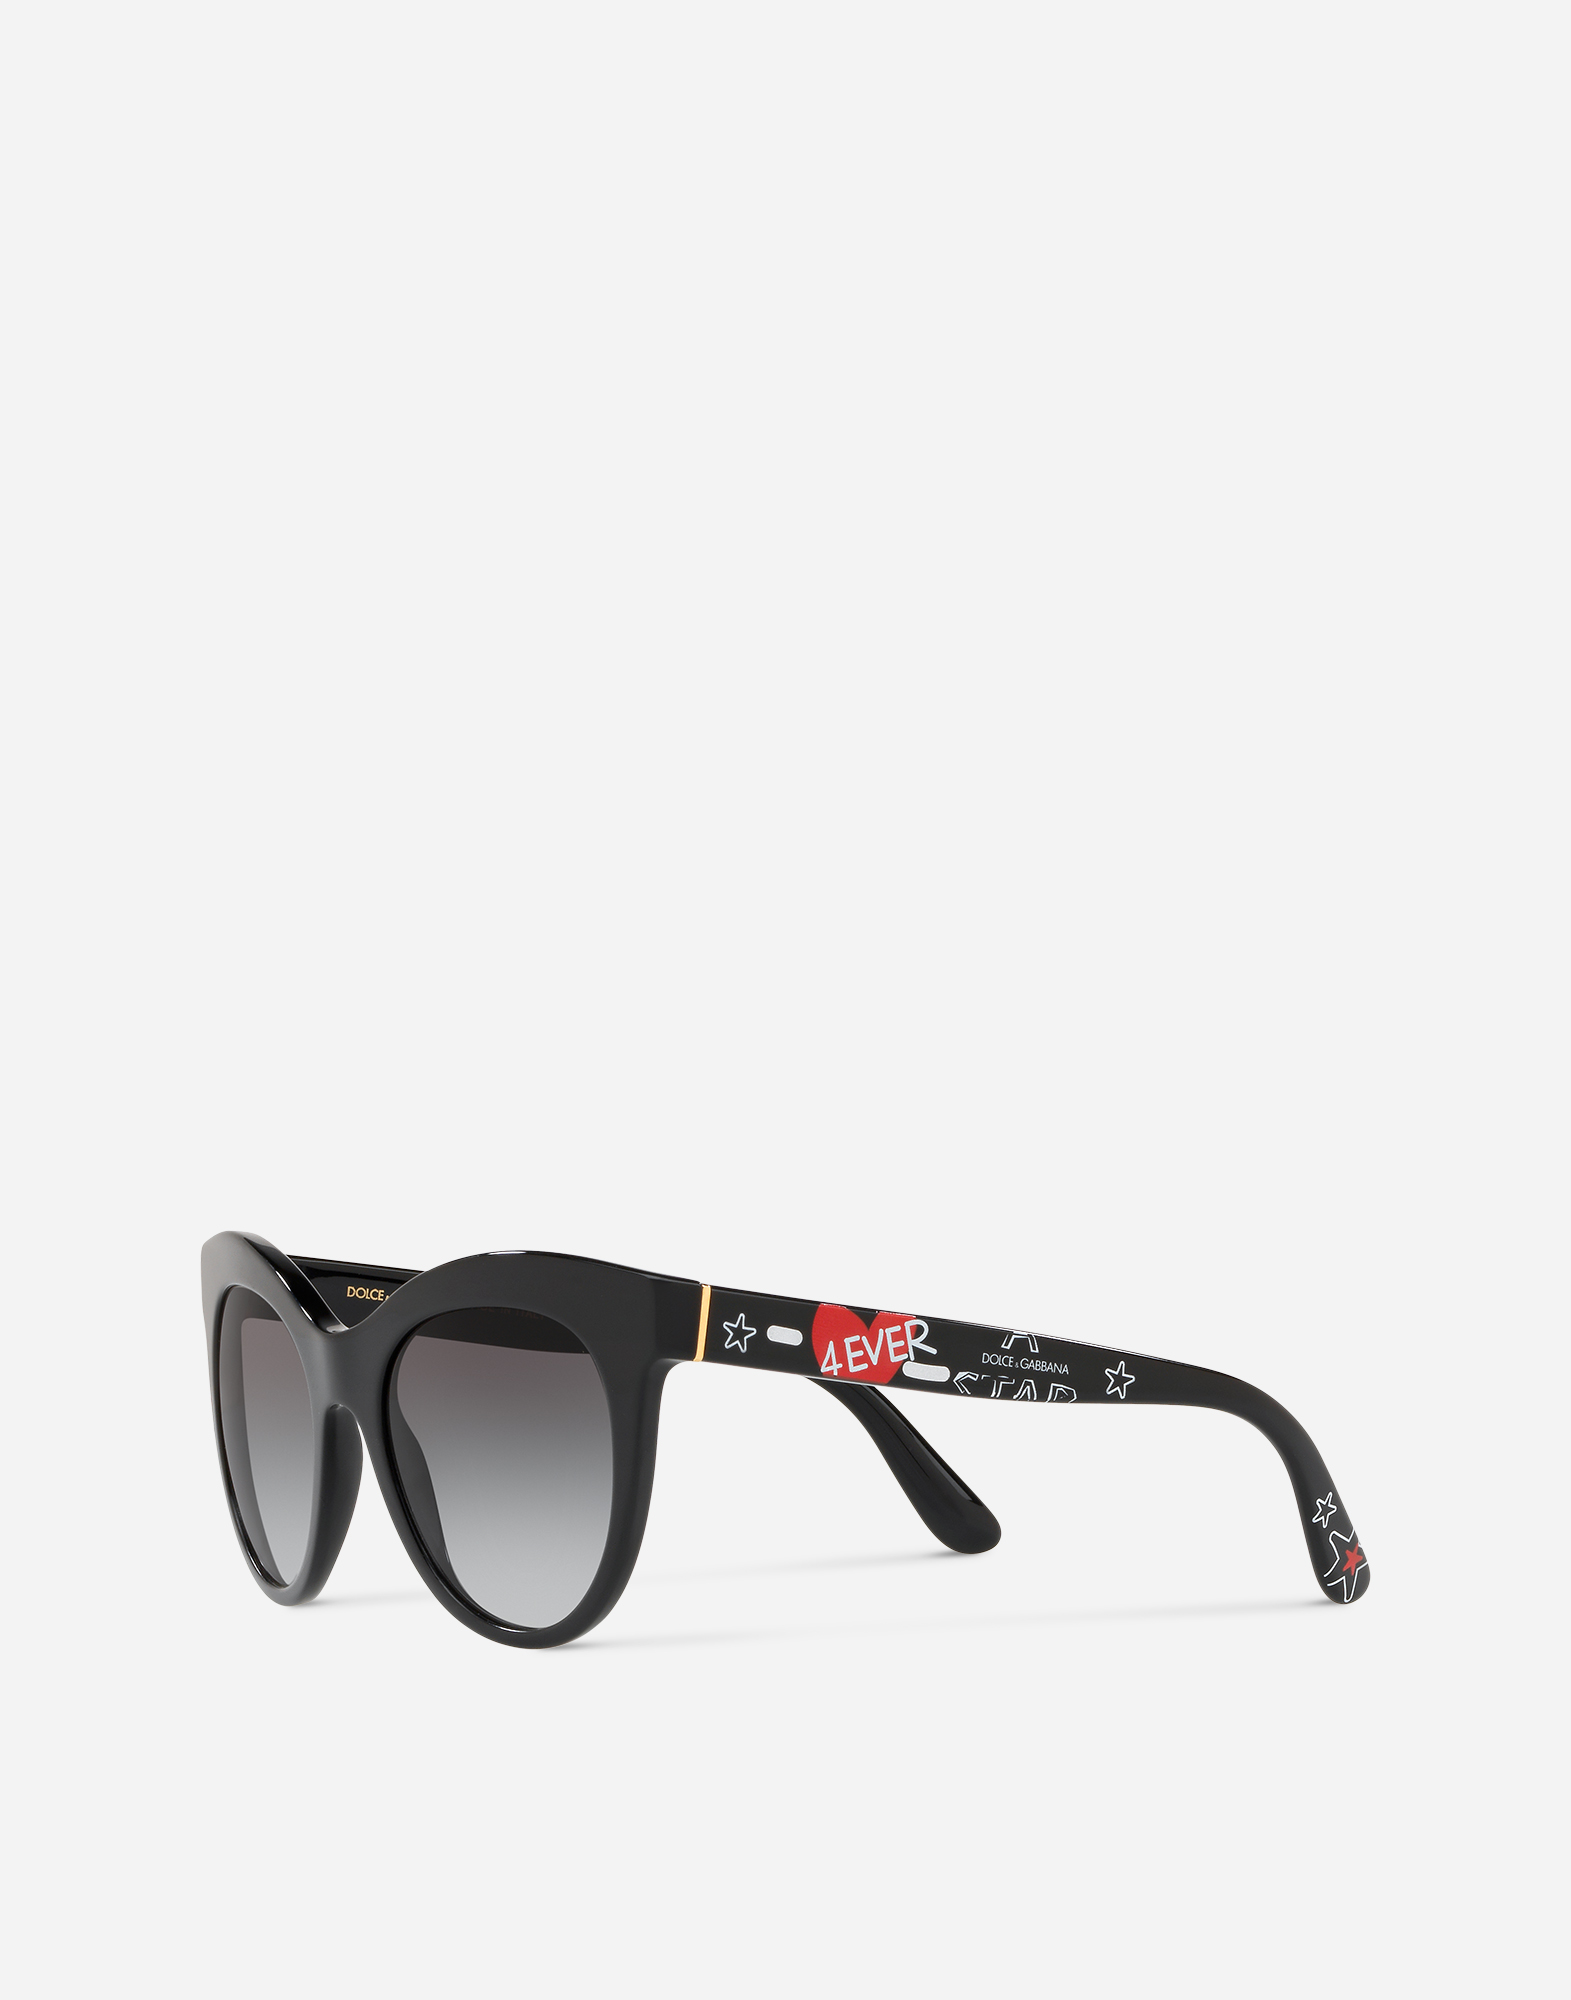 CAT-EYE SUNGLASSES IN ACETATE WITH GRAFFITI PRINT